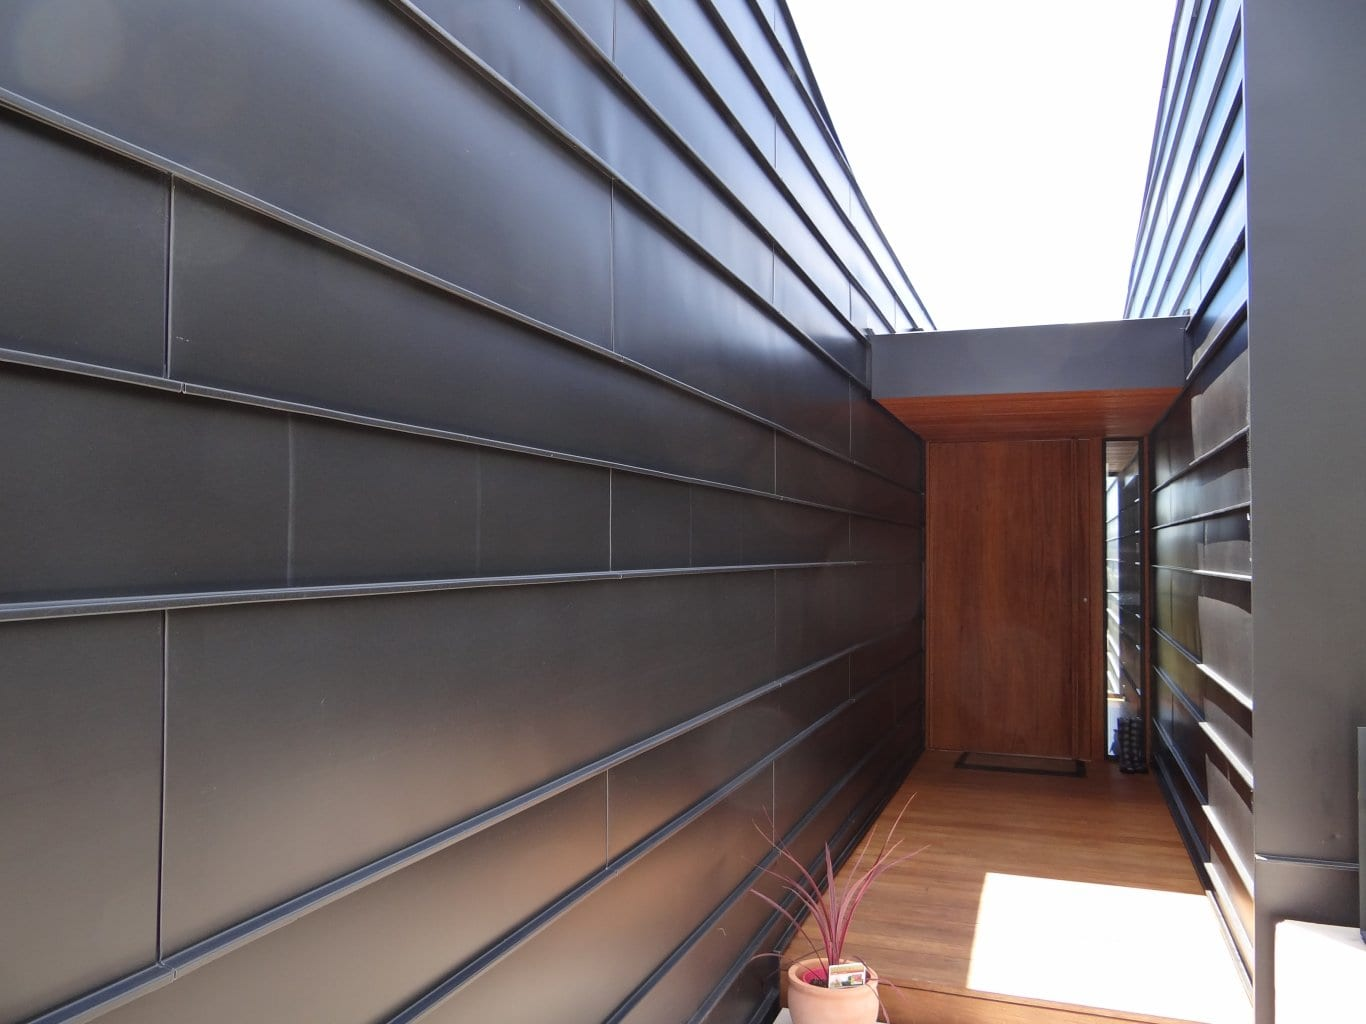 Commercial Metal and Cladding